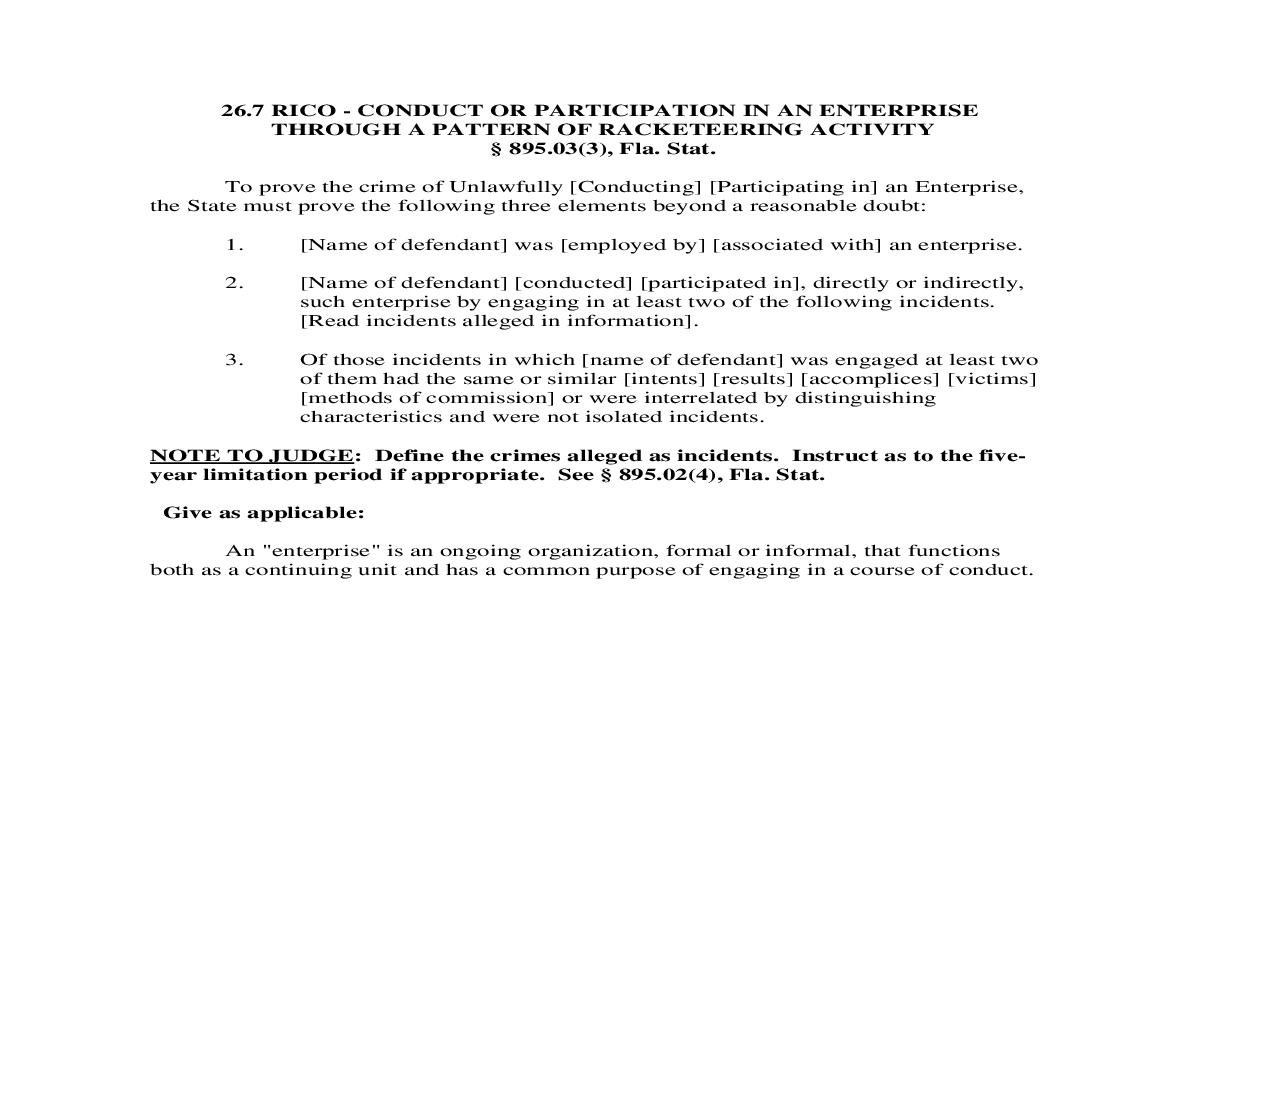 26.7. RICO - Conduct Or Participation In An Enterprise Through A Pattern Of Racketeering Activity | Pdf Doc Docx | Florida_JI